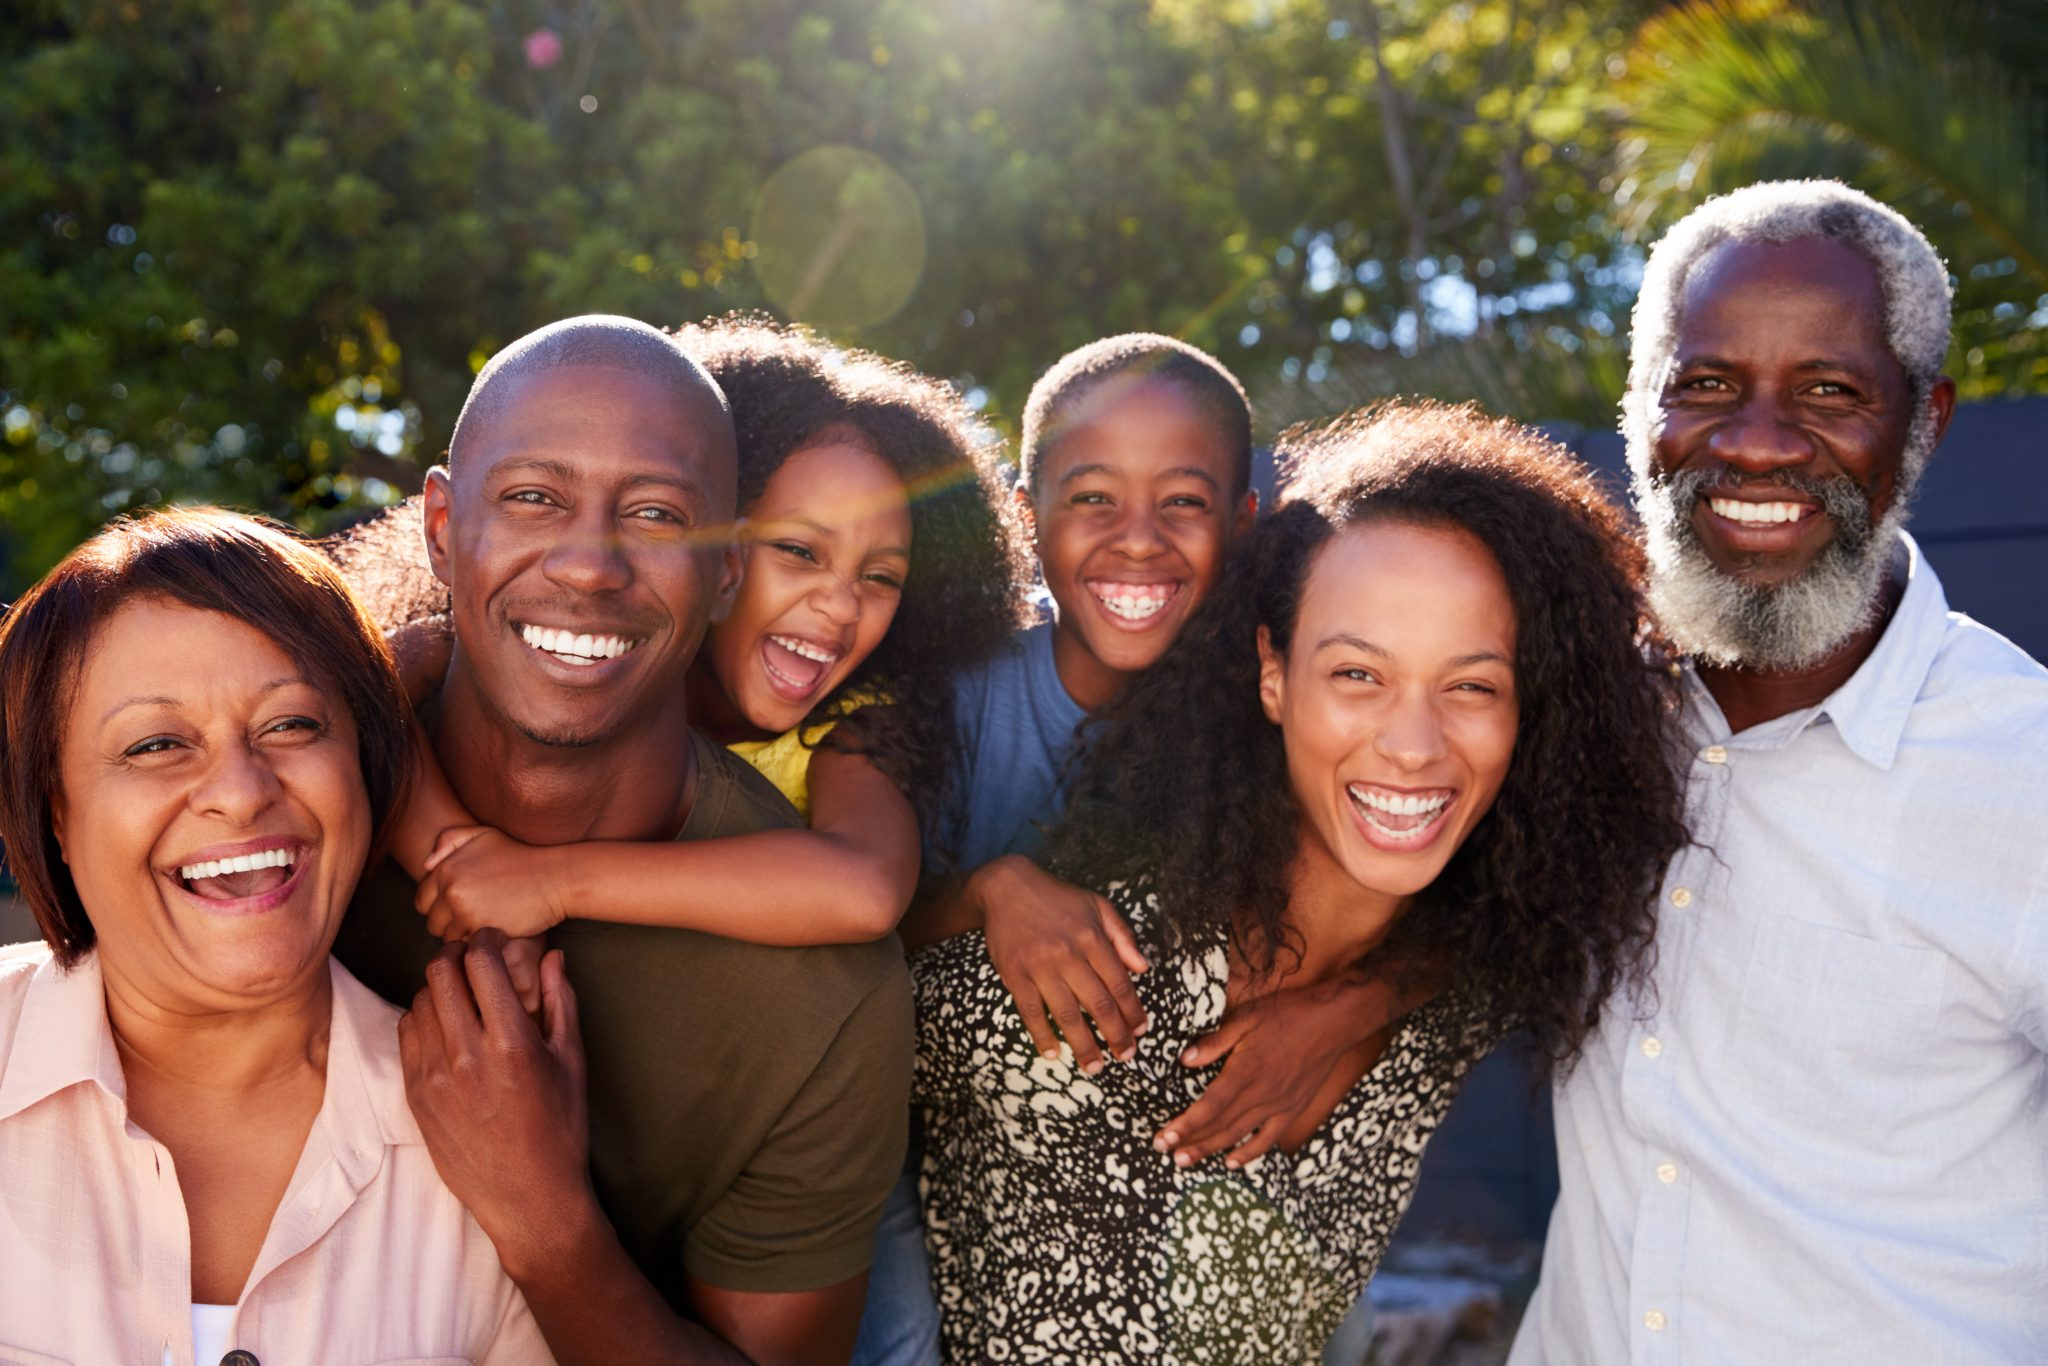 Outdoor Portrait Of Multi-Generation, African American Family In Garden At Home Against Flaring Sun